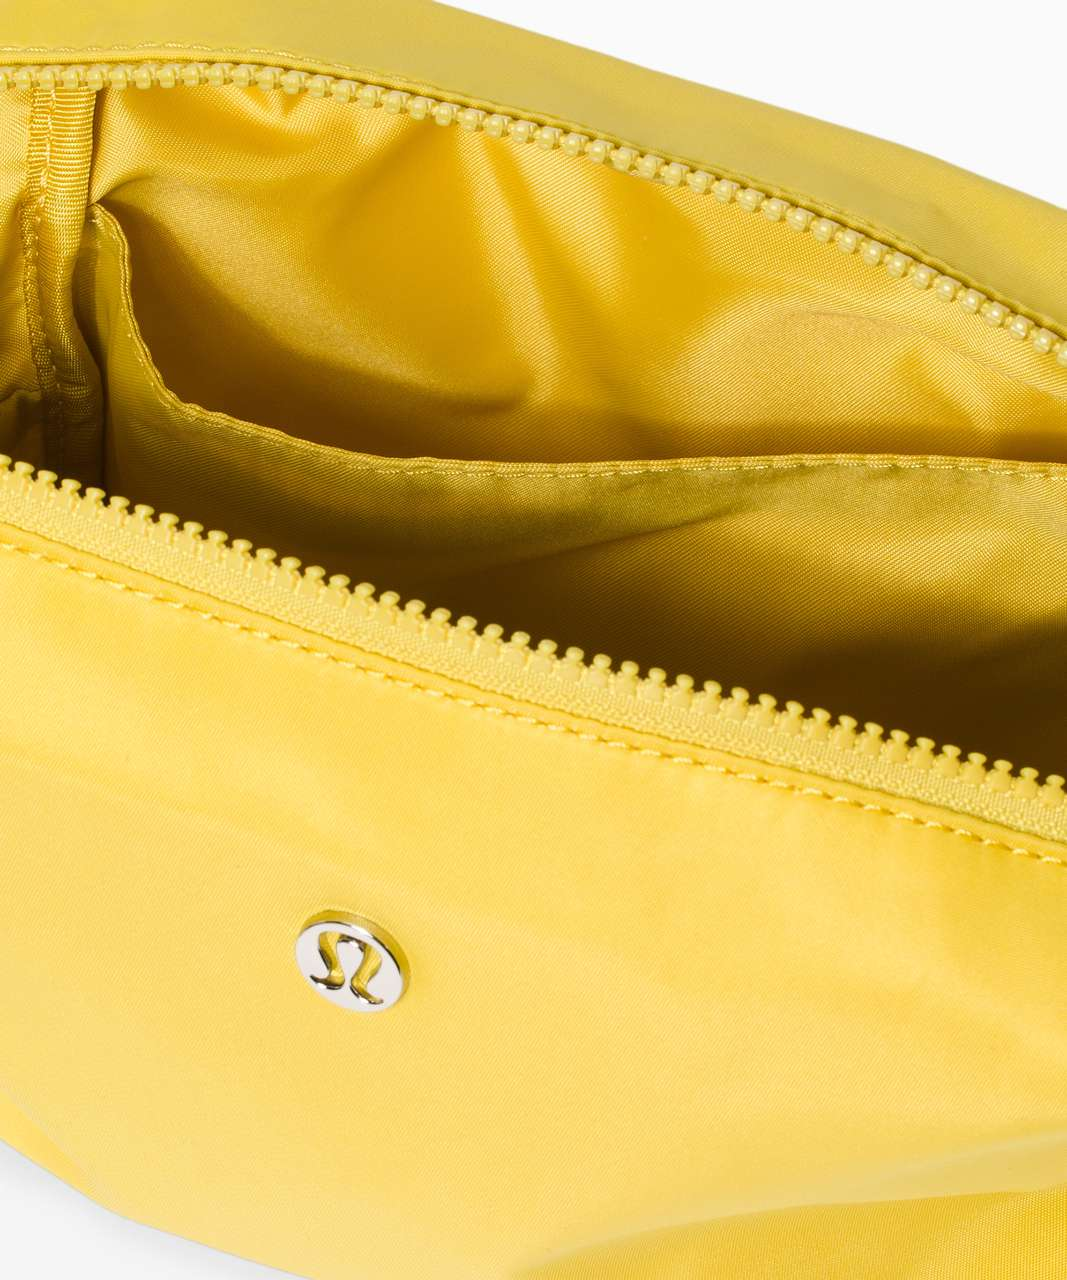 Lululemon All Your Small Things Pouch *4L - Soleil